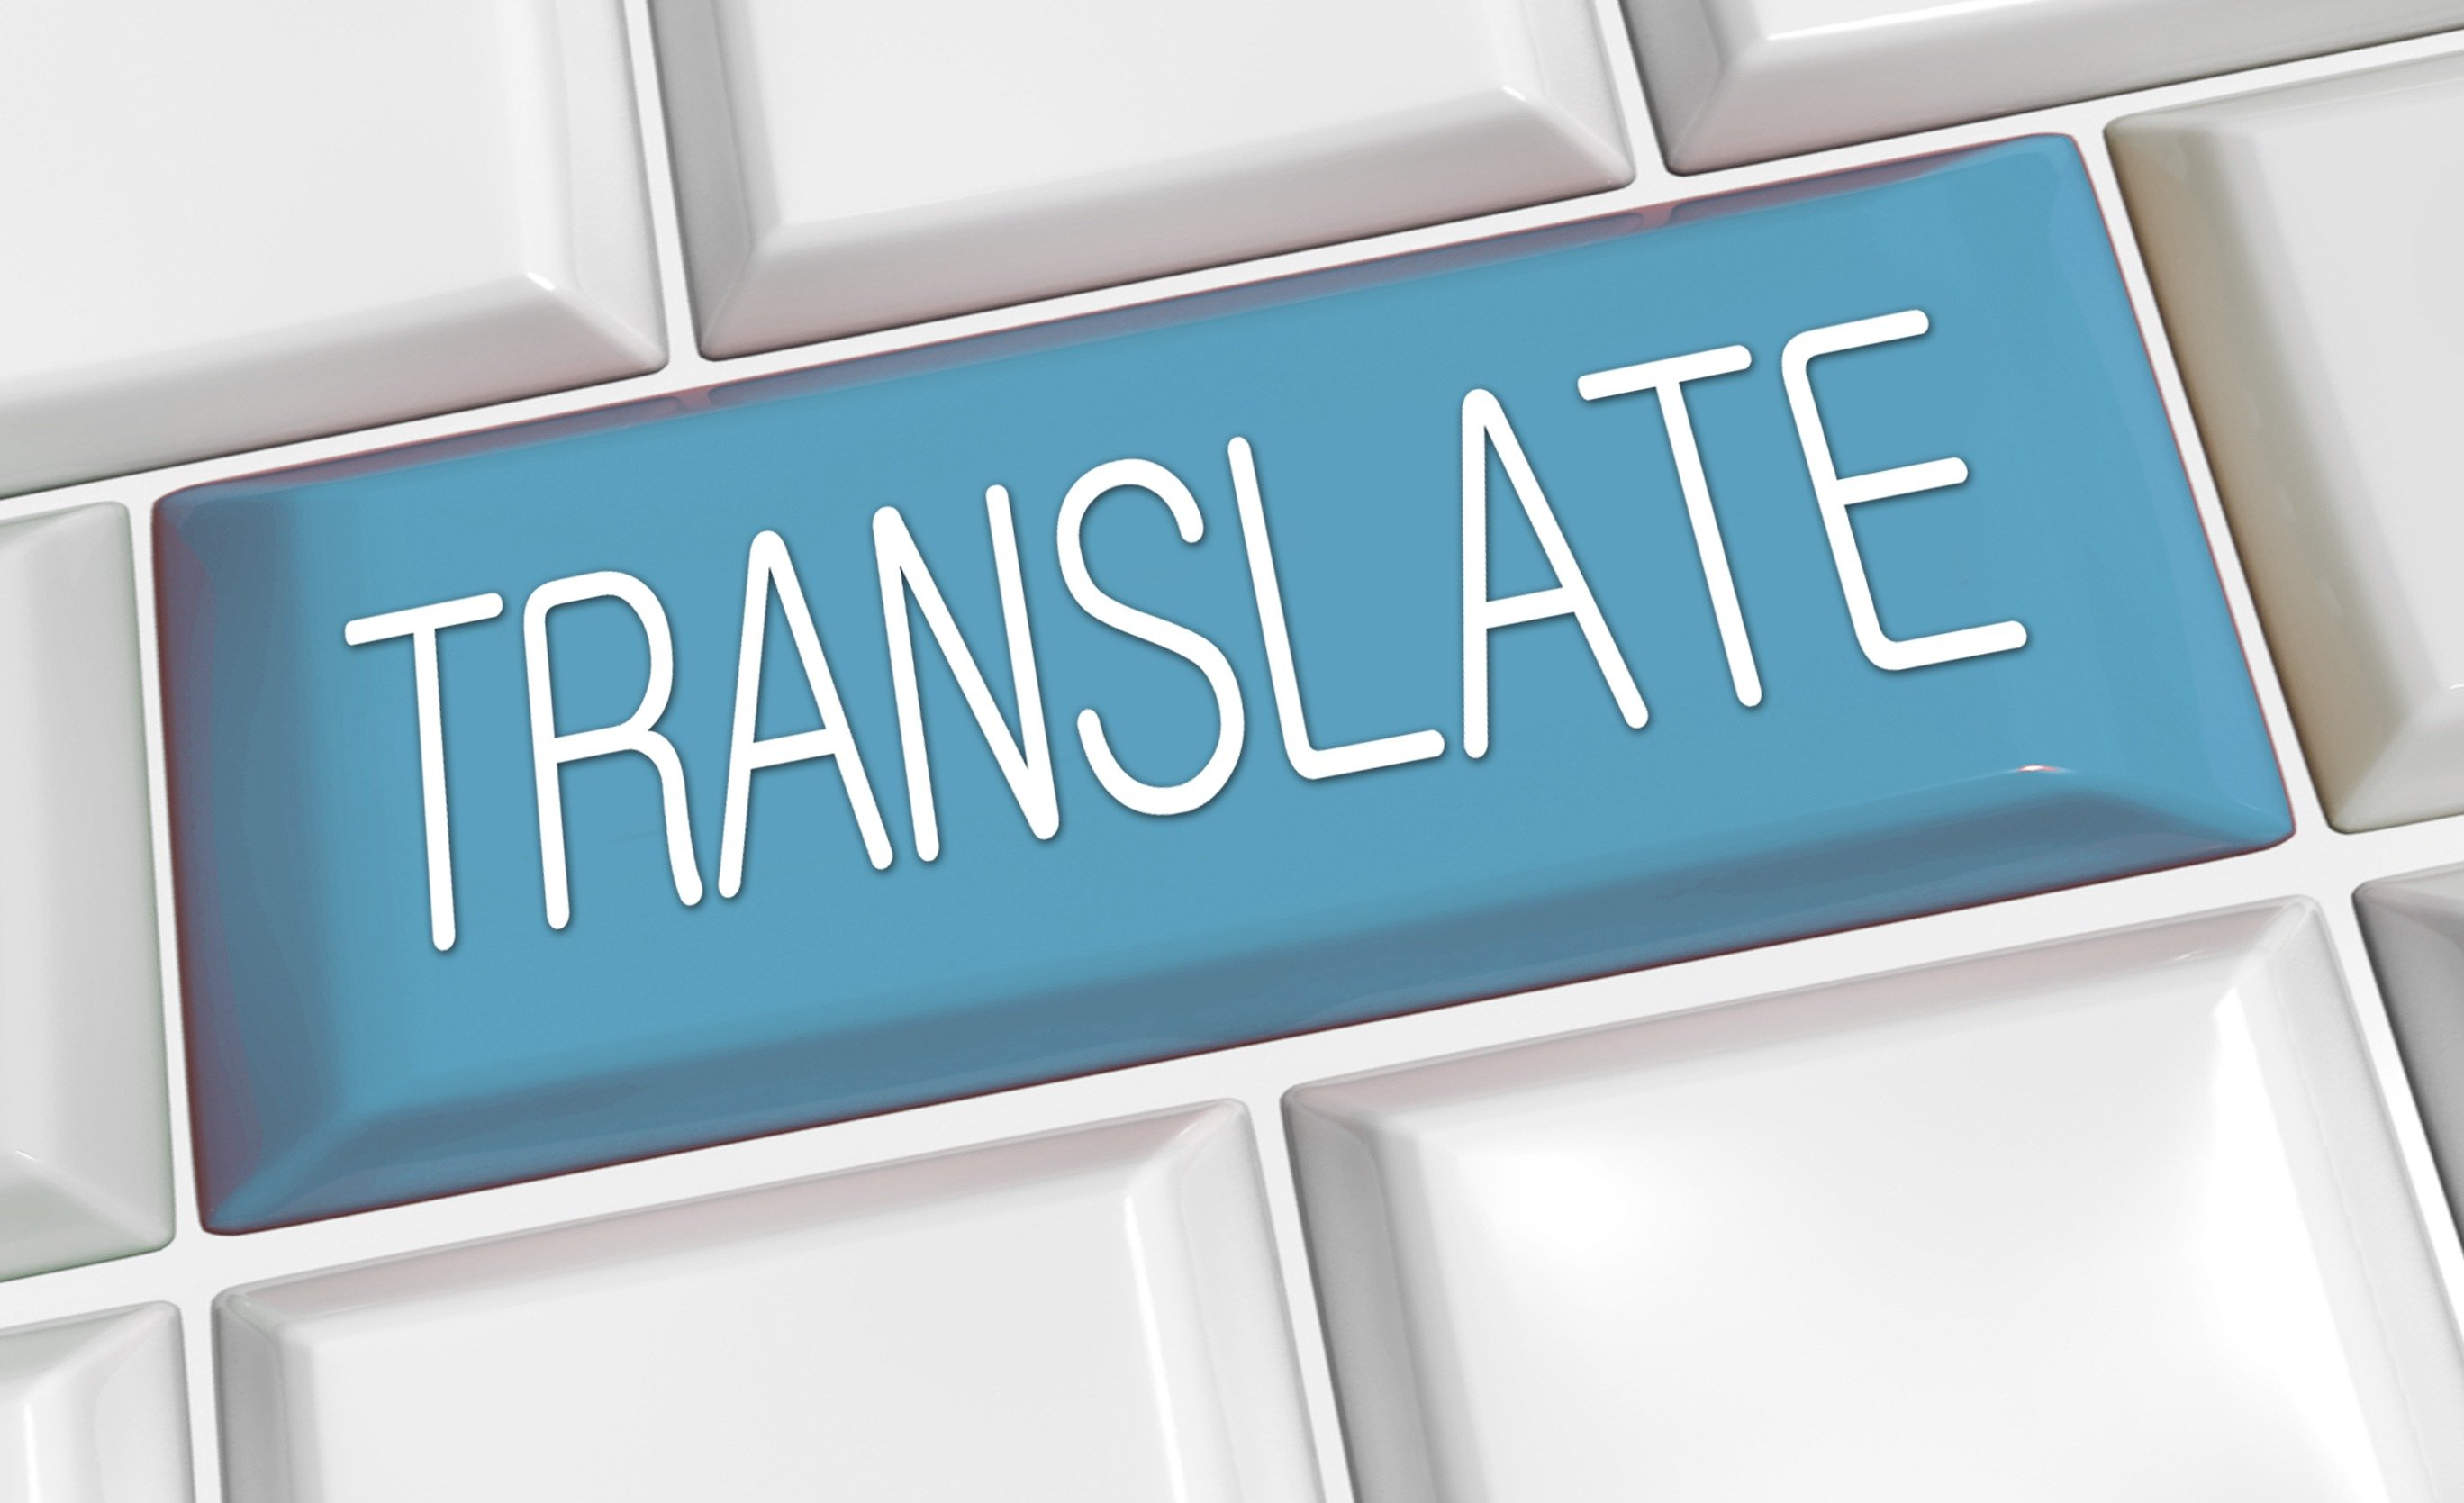 I Will Translate English Into Spanish and French and Vice Versa